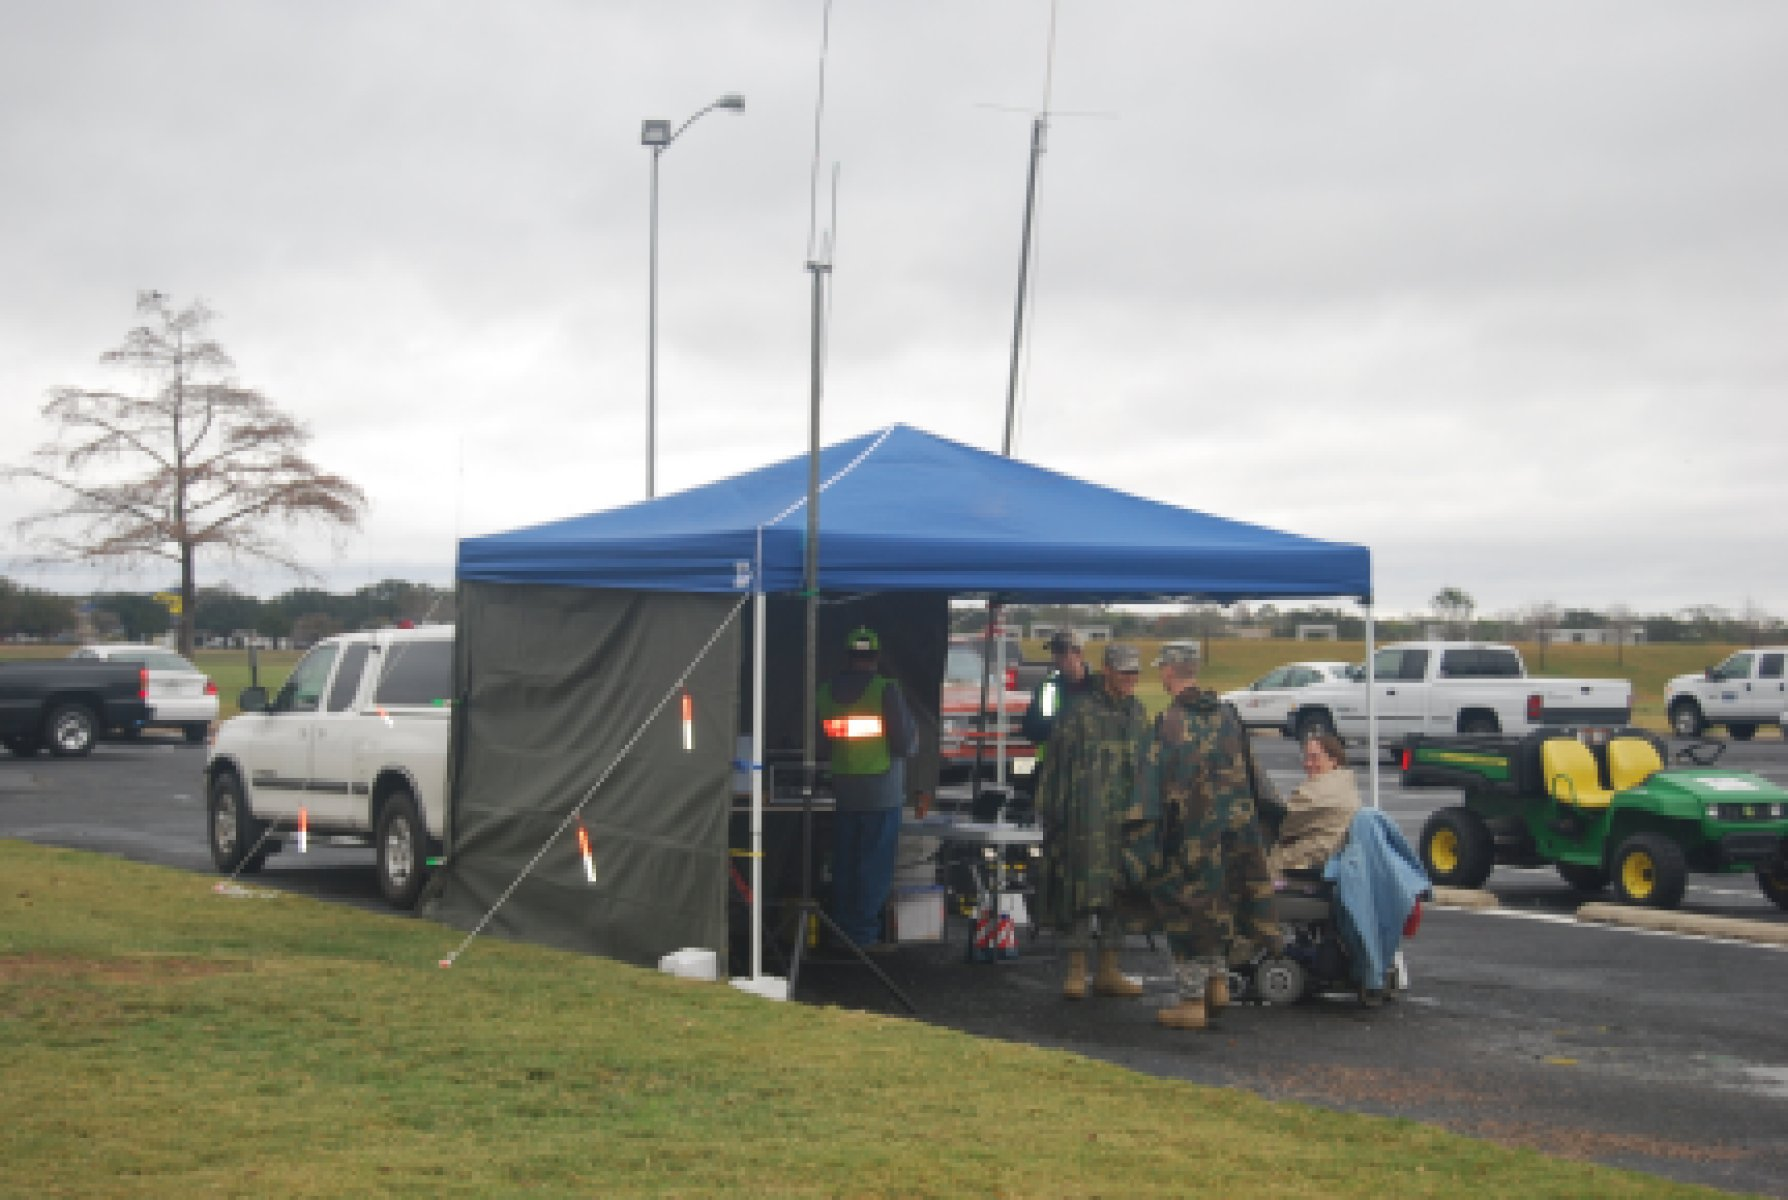 ares_xmas_2011_tent_1